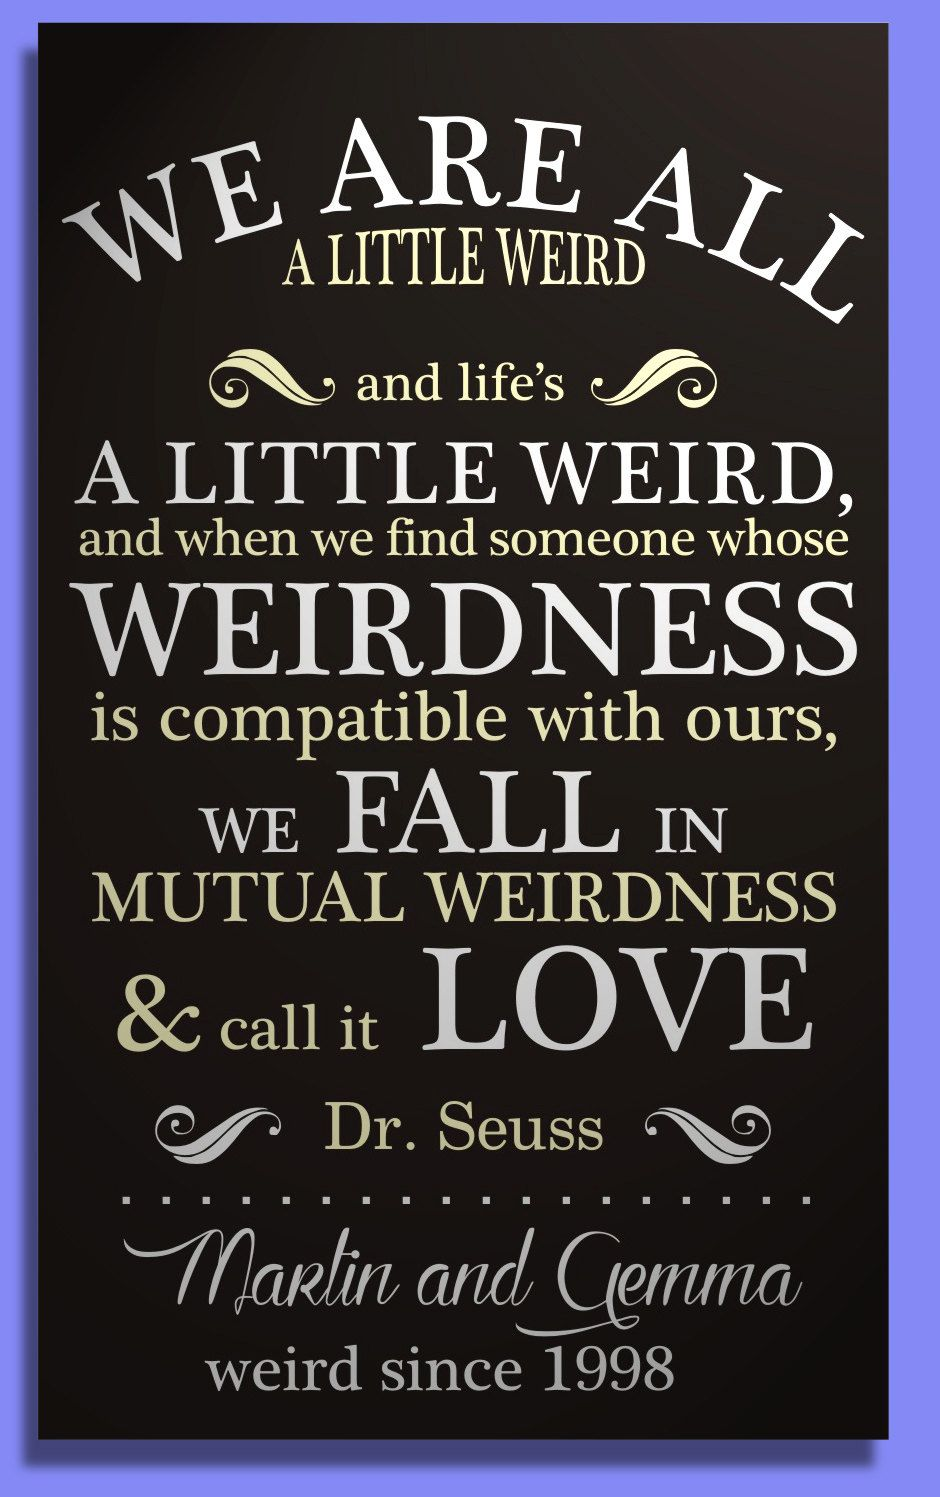 Personalised Weird Love Sign Hand Painted On Wooden Board Drseuss